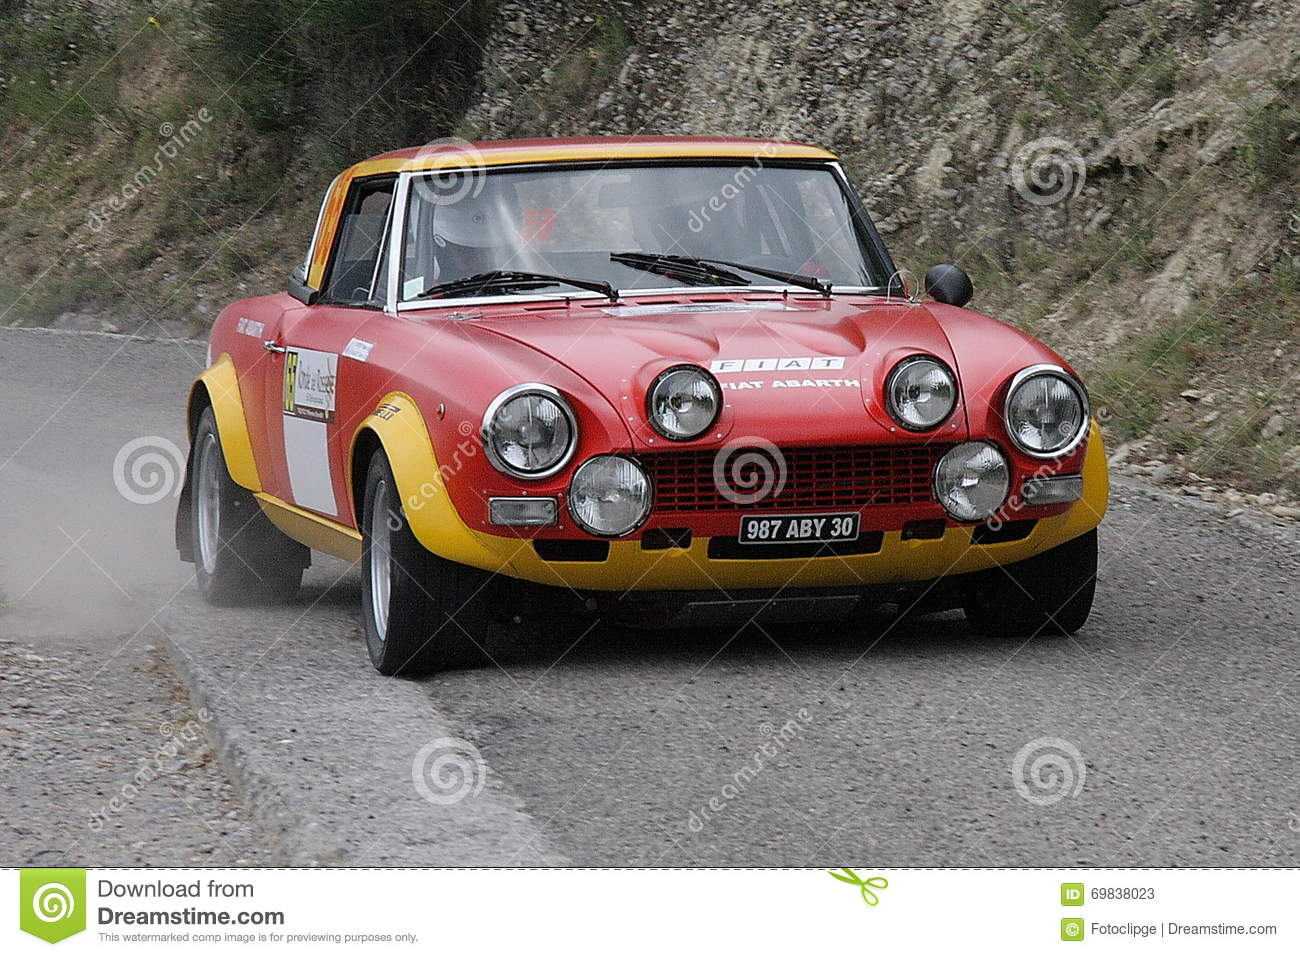 Fiat 124 Abarth Rally Car Editorial Stock Photo Image Of Best